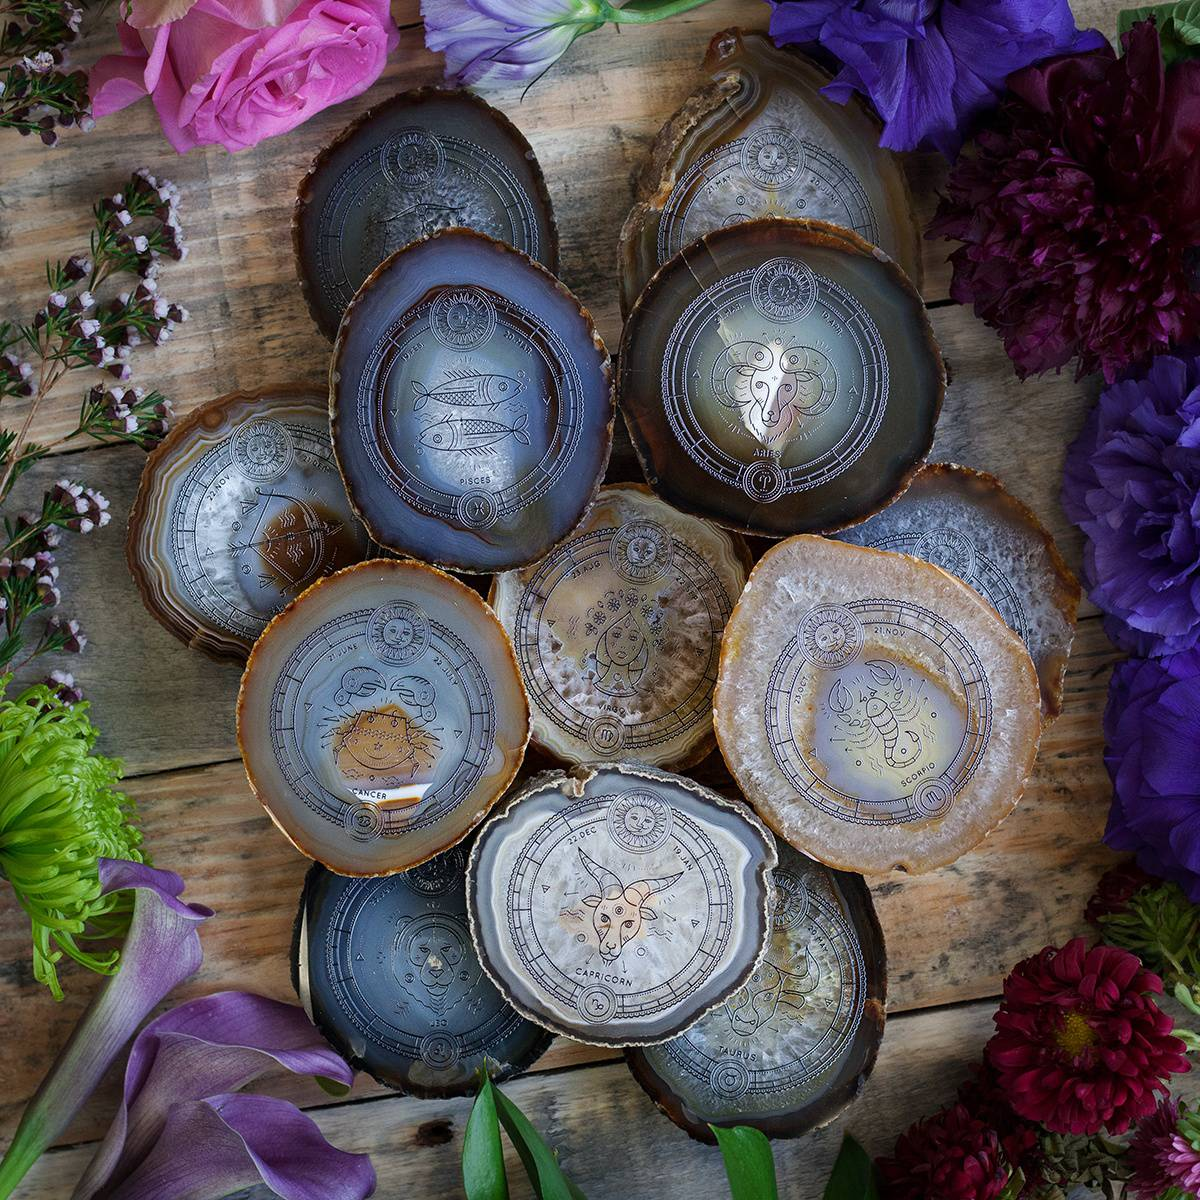 Astrology Agate Altar Plates DD 5_19 featured